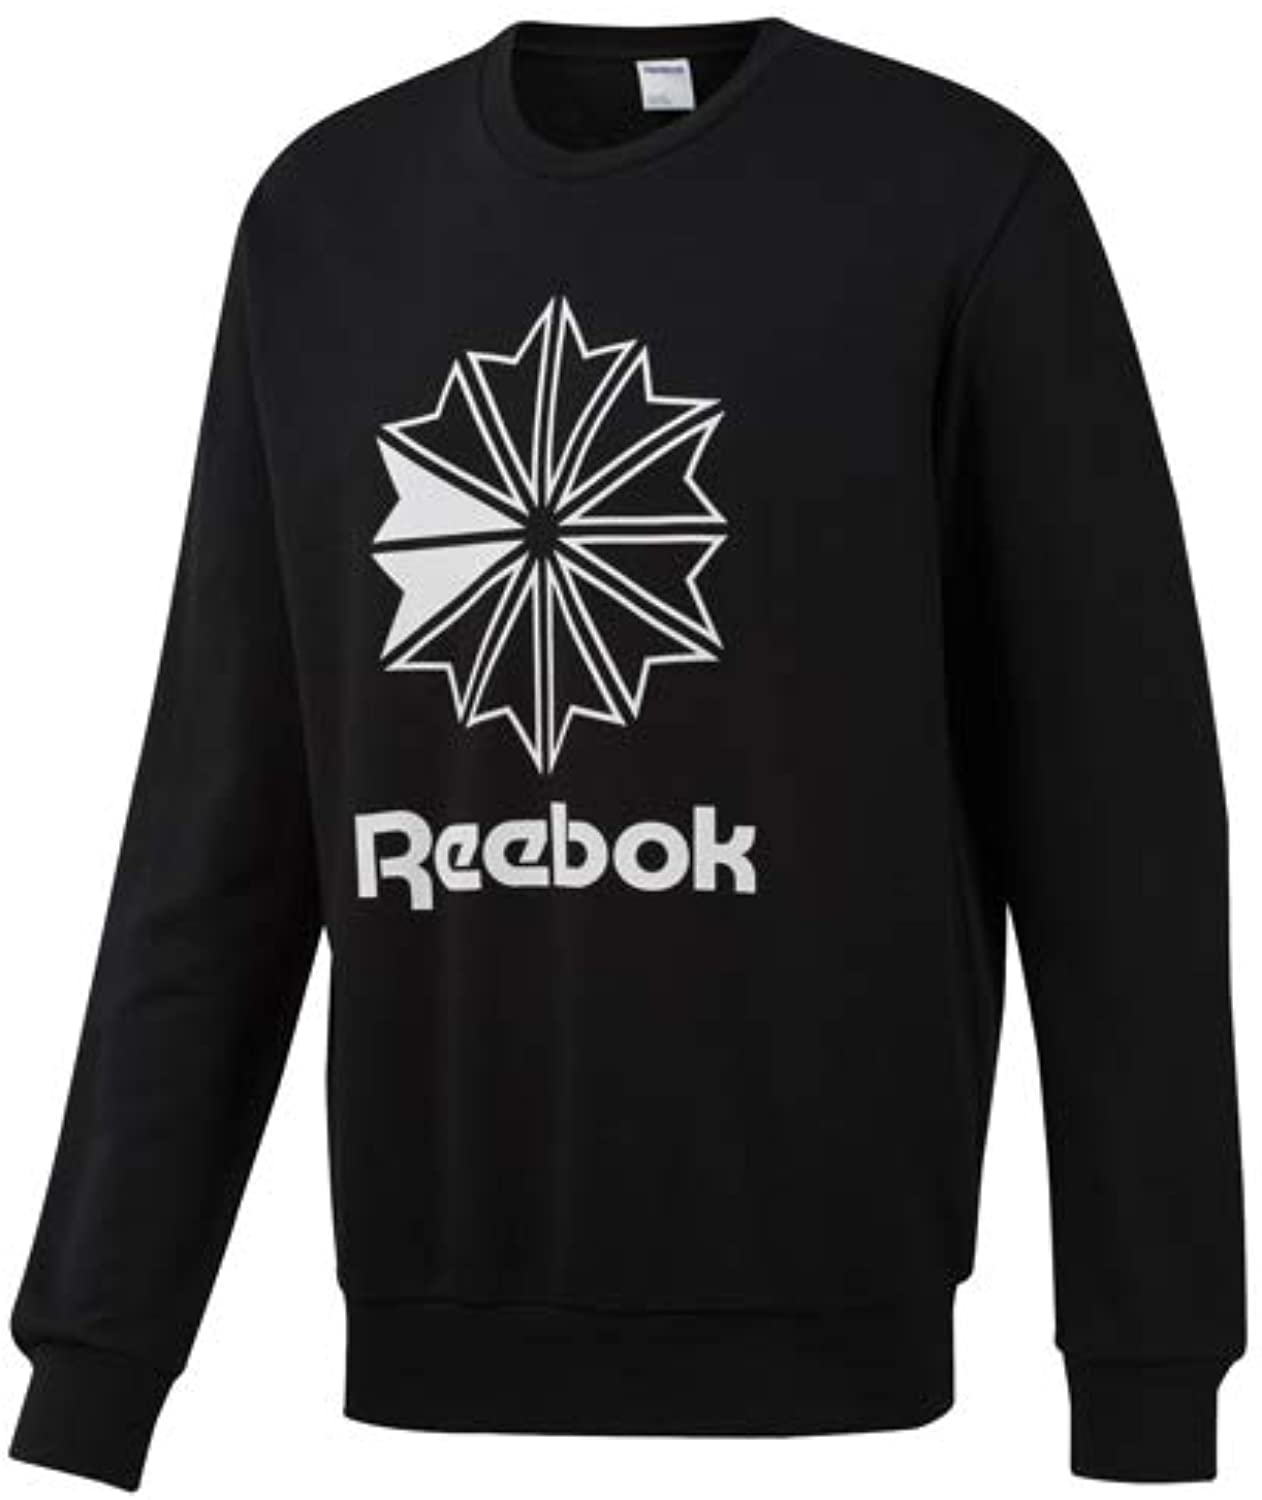 Reebok Big Starcrest Crew Sweatshirt